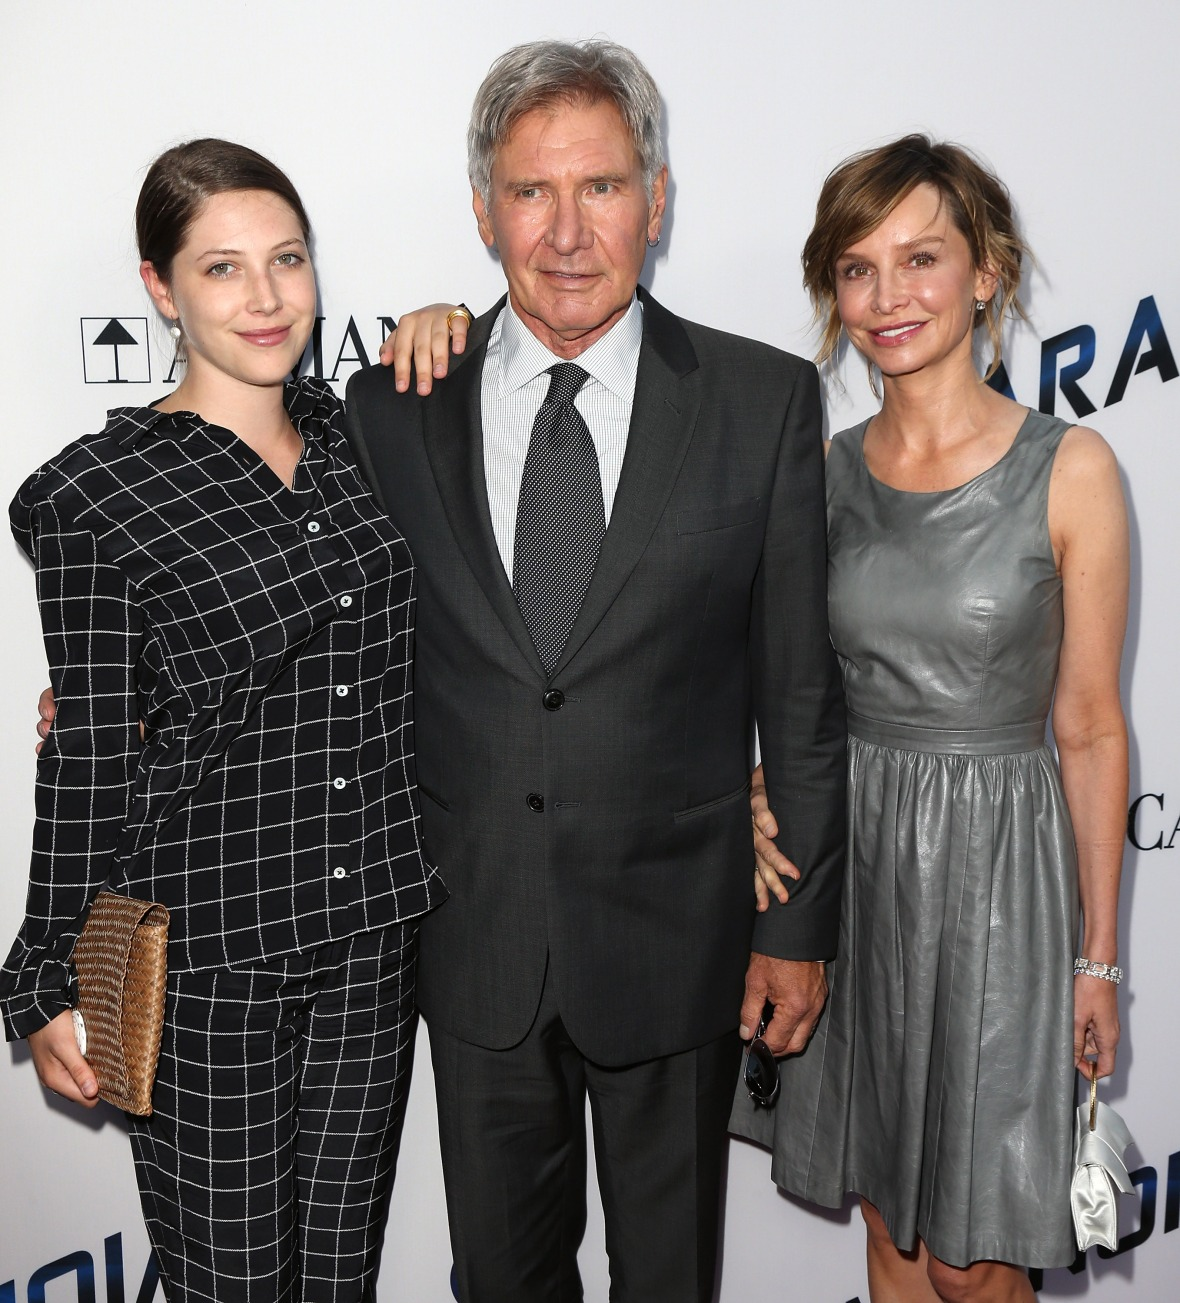 harrison ford family getty images